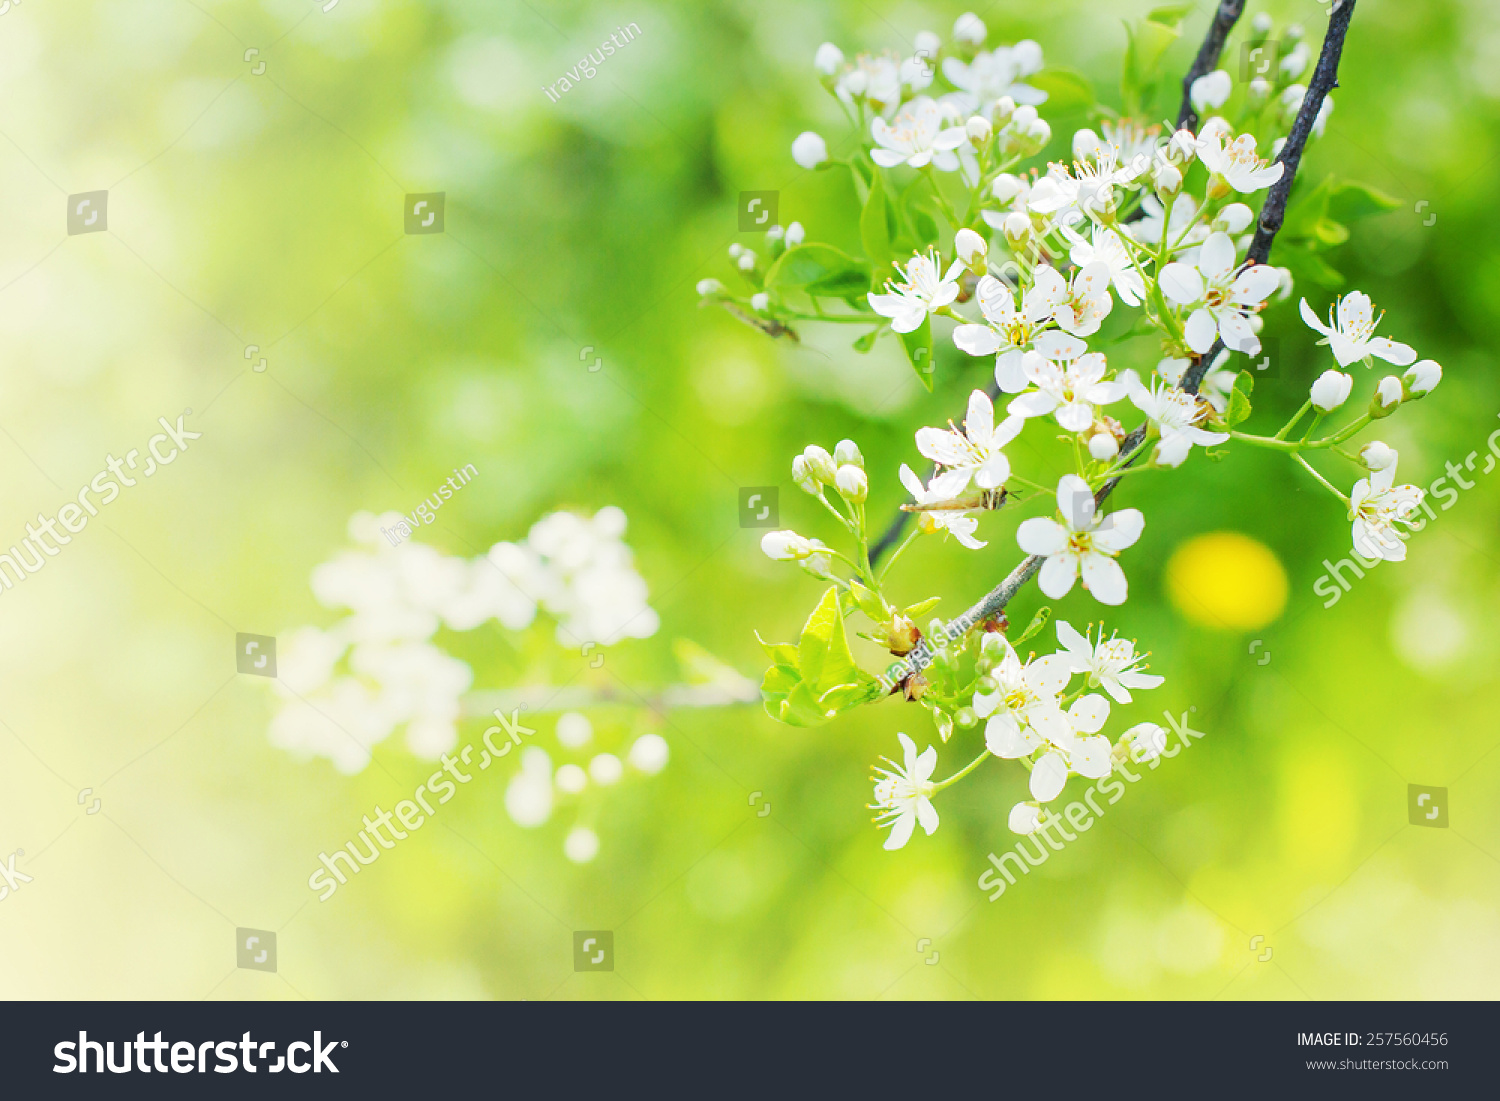 cherry blossoms over blurred nature background stock photo